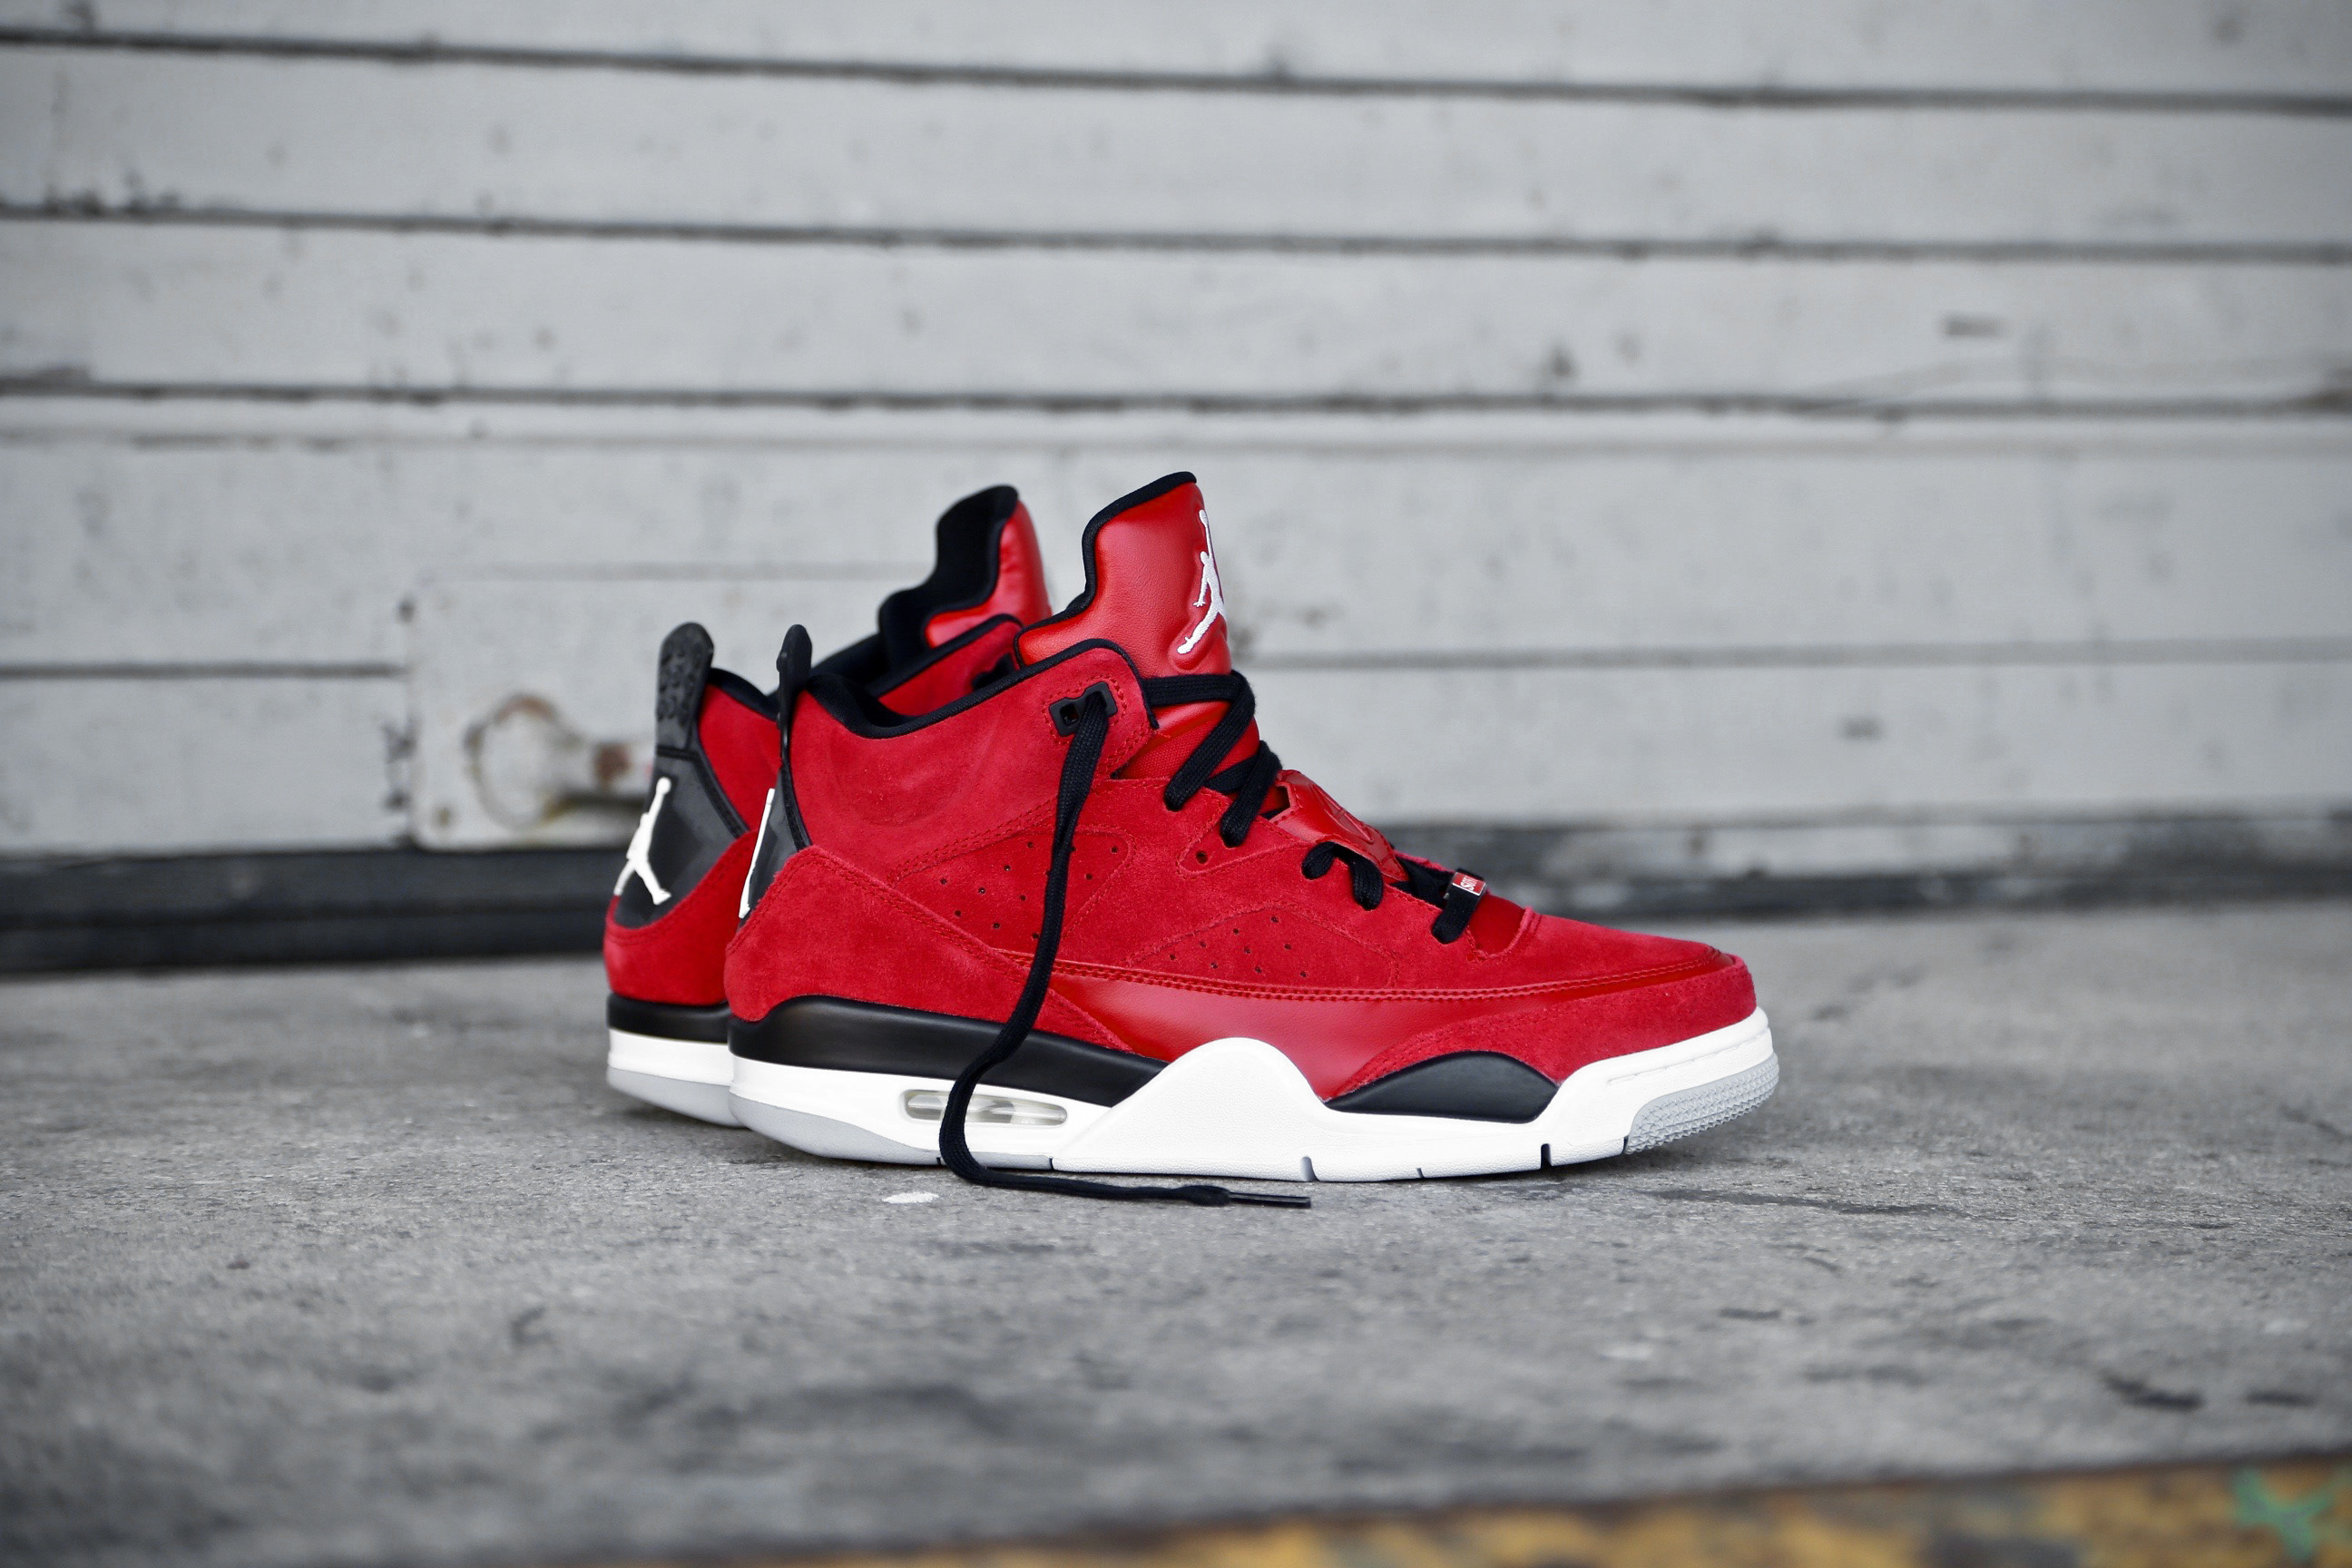 brand new b8a55 692a6 Jordan Son Of Mars Low – Gym Red   Black   White – STASP